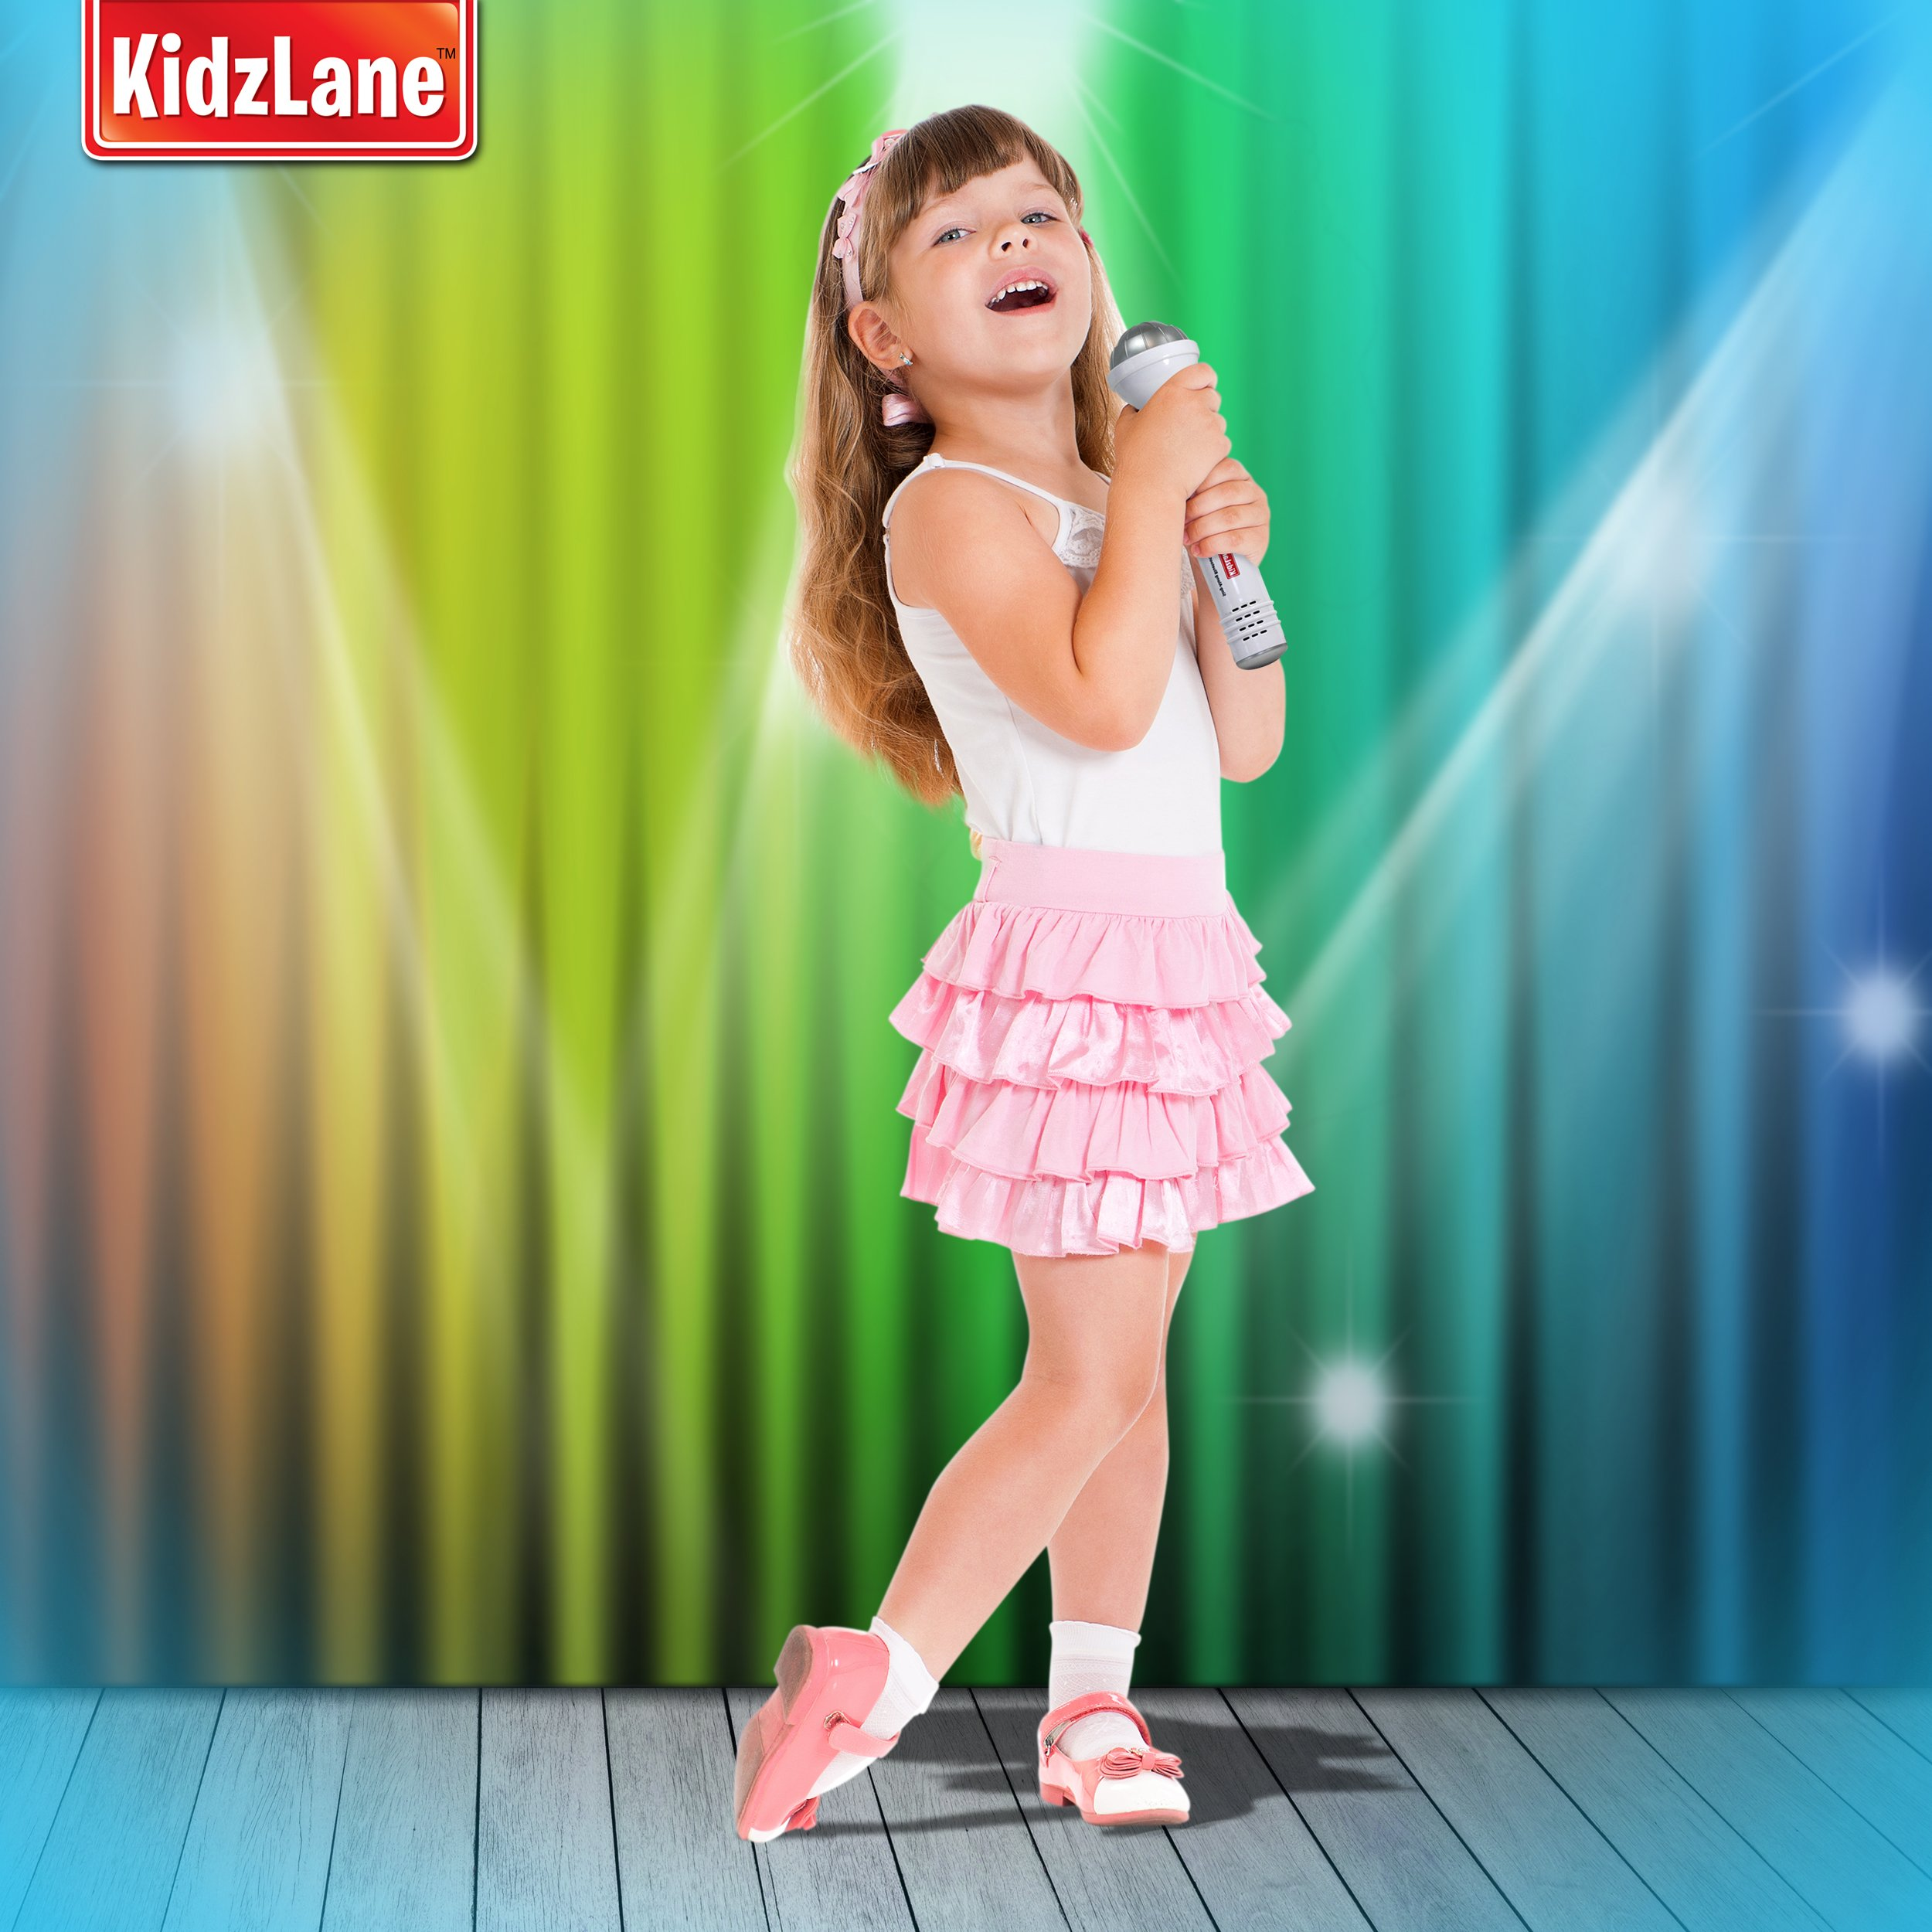 Kidzlane Microphone for Kids - Karaoke Machine Sing-A-Long Music Player with Built in Speakers, Preprogrammed Music and Wireless Connnectivity by Kidzlane (Image #2)